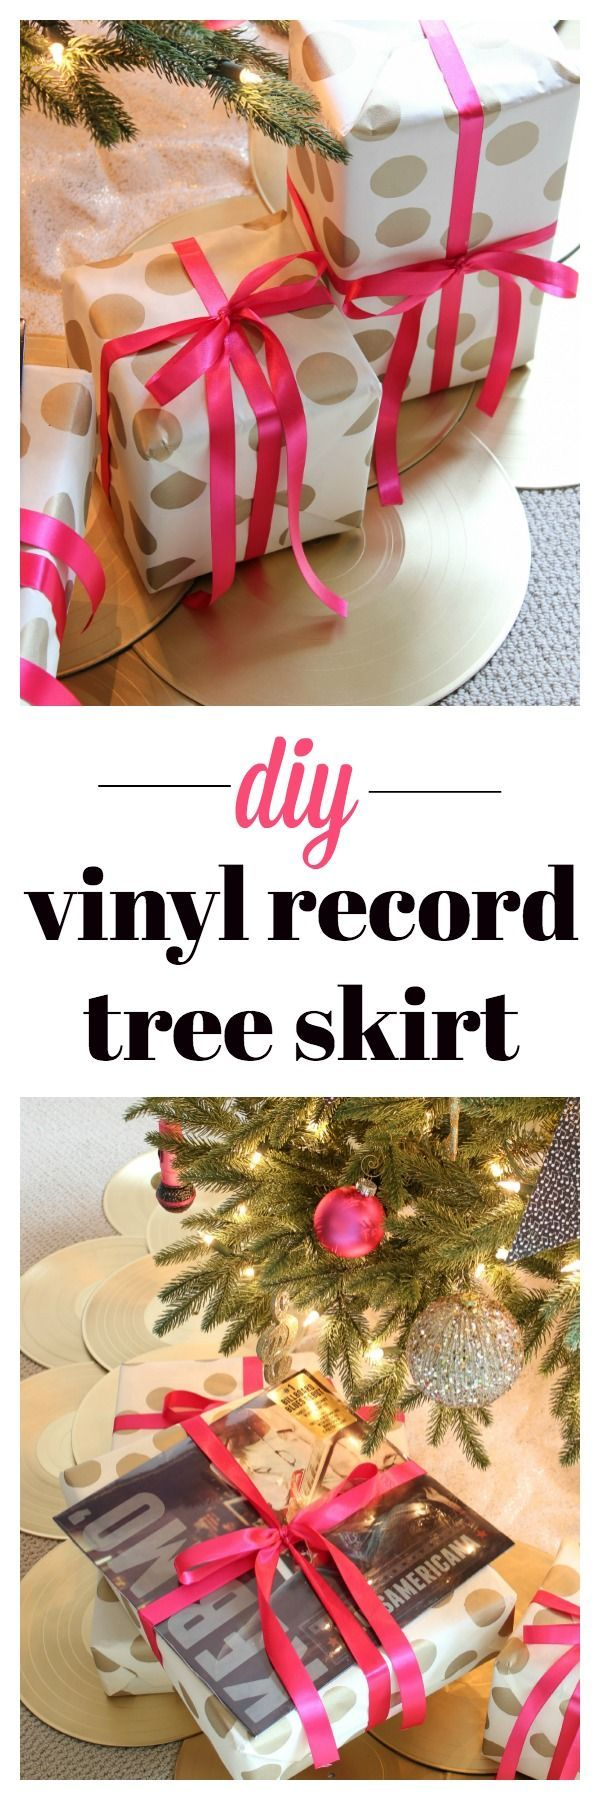 Hometalk diy christmas window decoration - Easy Diy Vinyl Record Tree Skirt